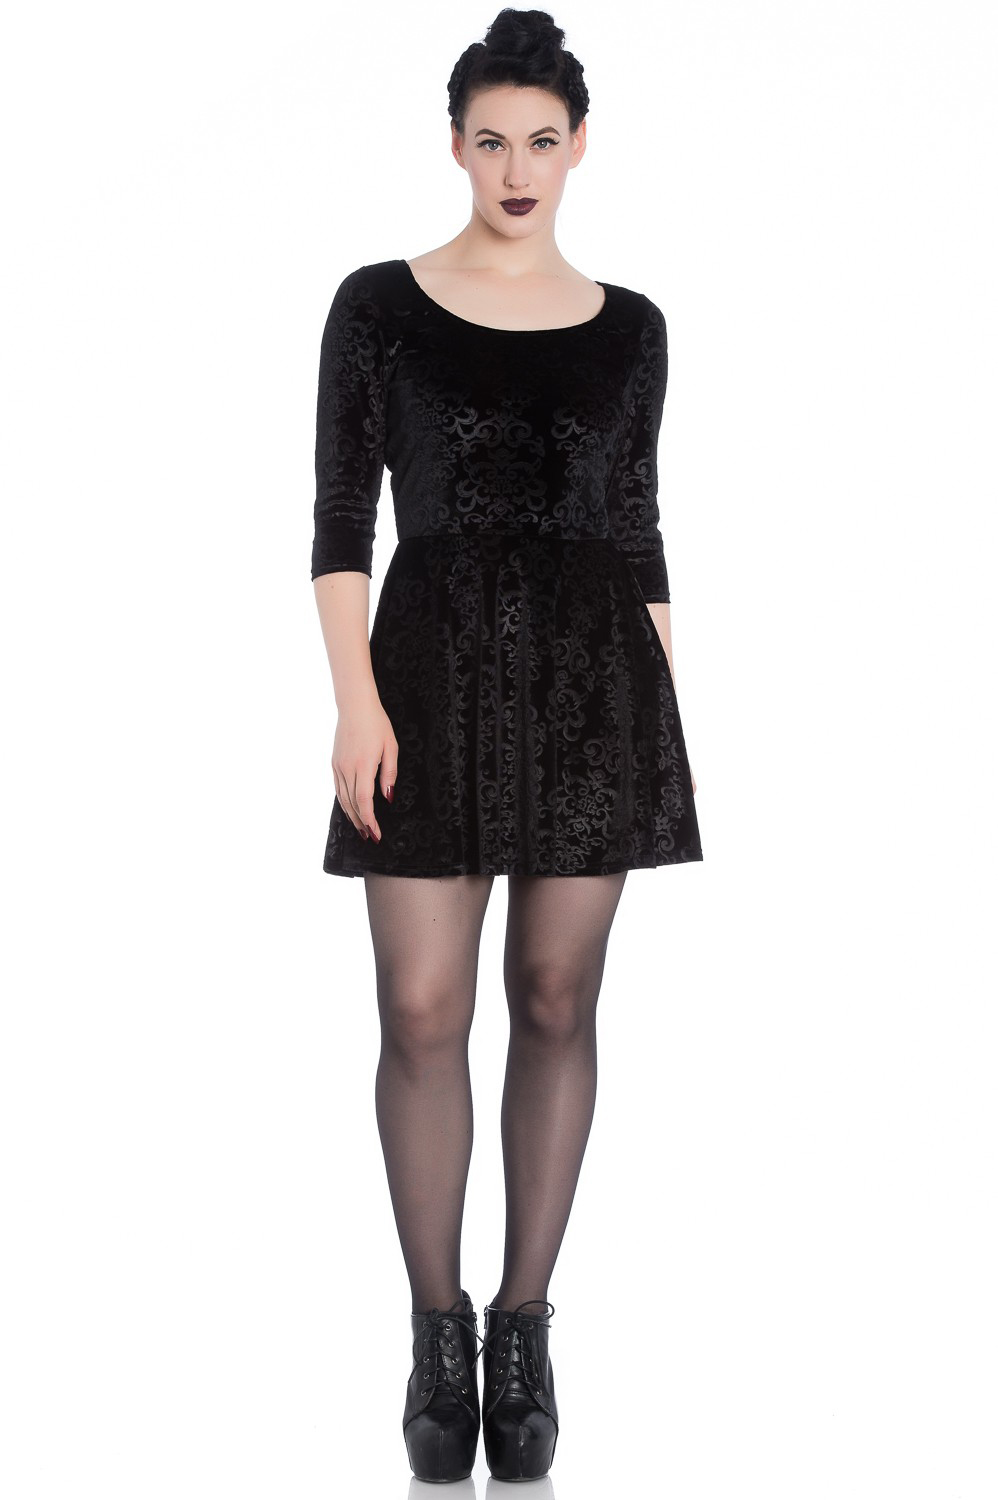 Margot Dress by Hell Bunny / Spin Doctor - Black Filigree Velvet - SALE